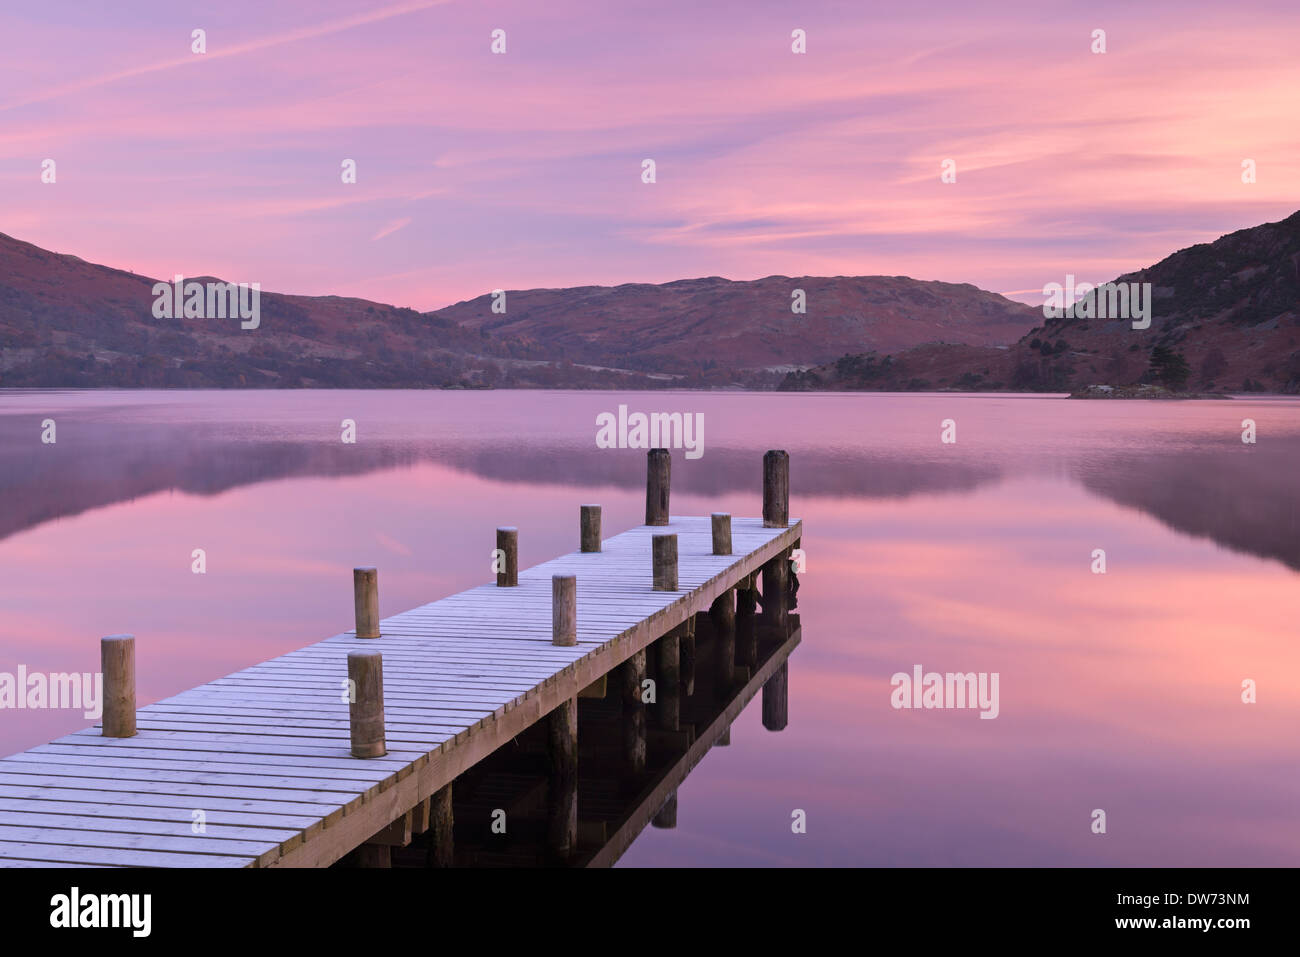 Frosty wooden jetty on Ullswater at dawn, Lake District, Cumbria, England. Winter (November) 2013. - Stock Image